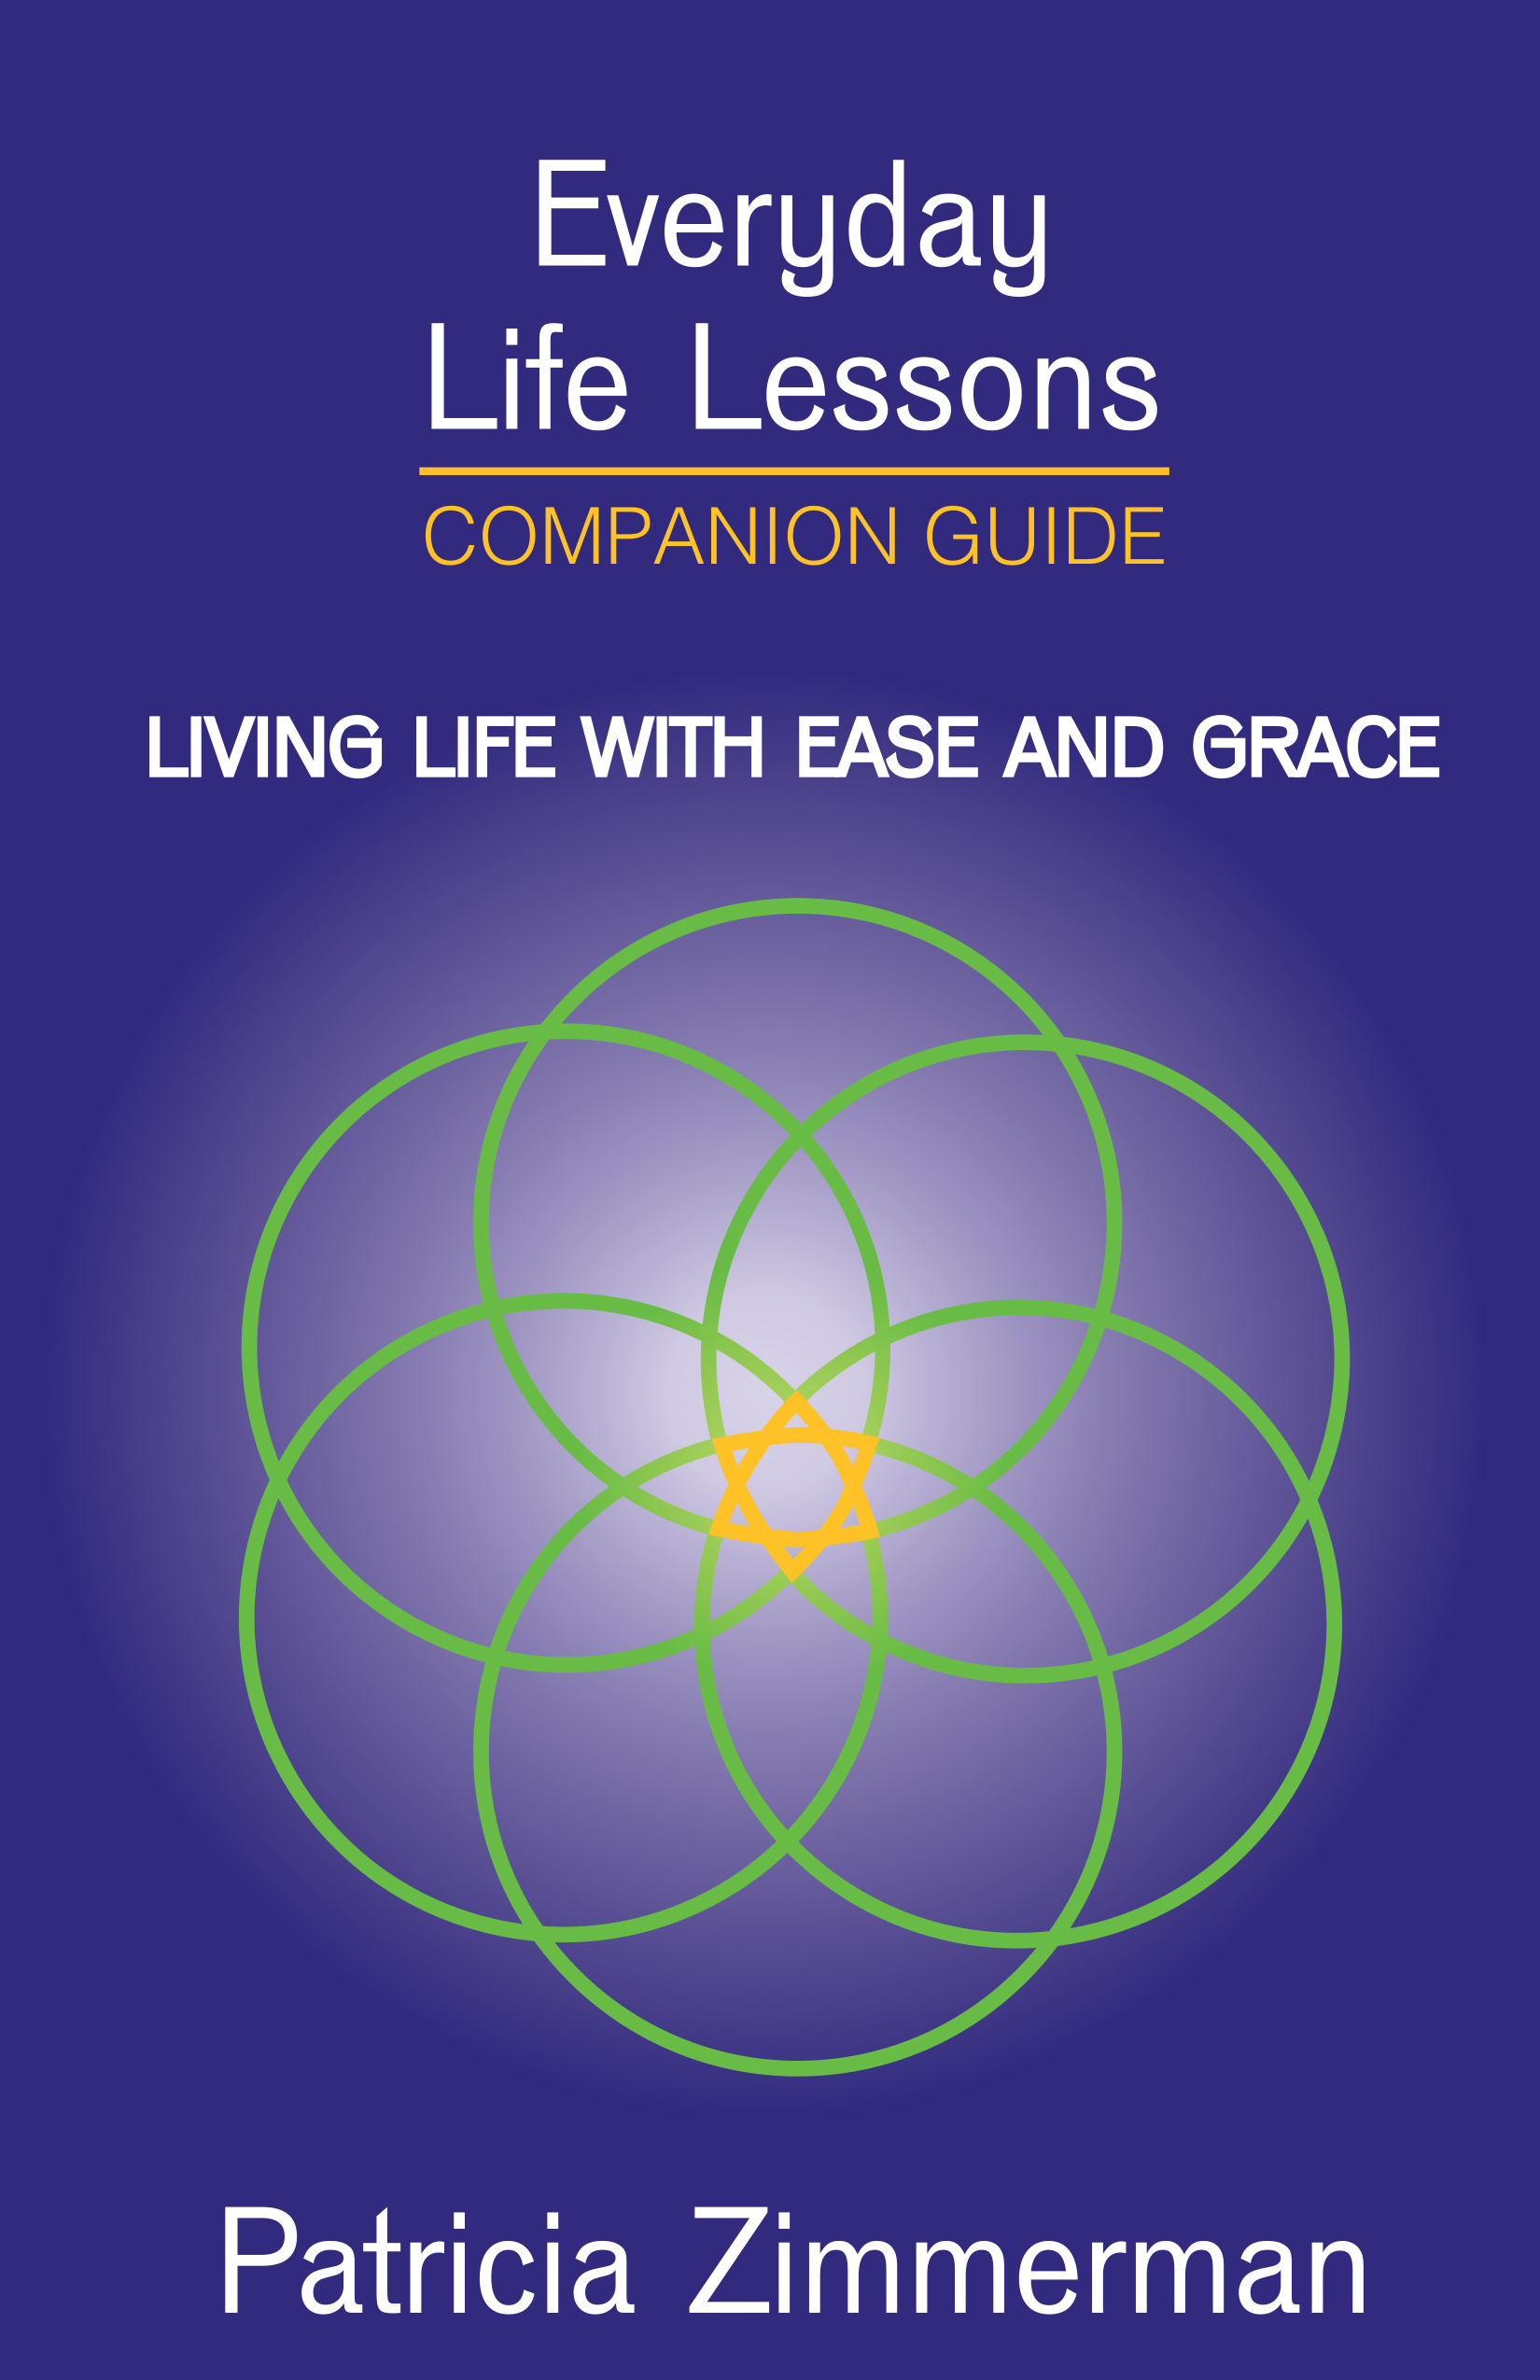 ELL_book2_CompanionGuide_coveronly_ol.jpg